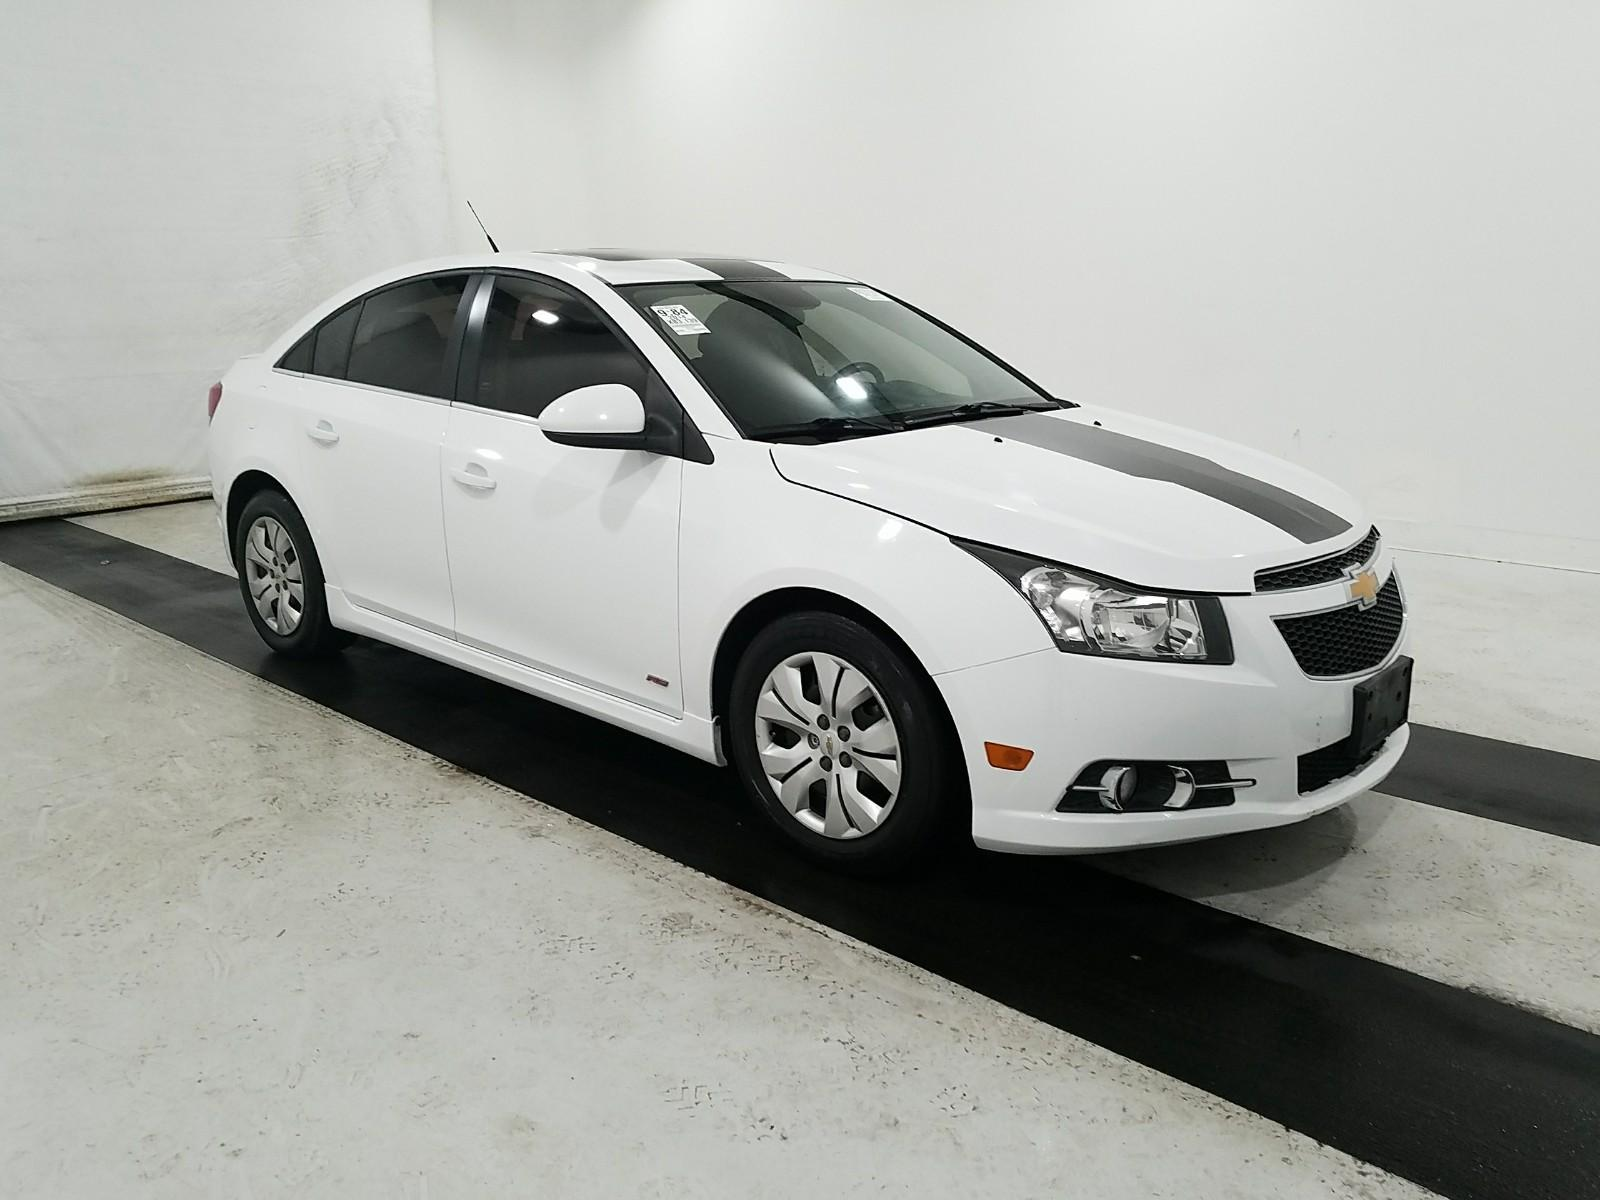 drive cruze motoring front chevrolet news turbo launch